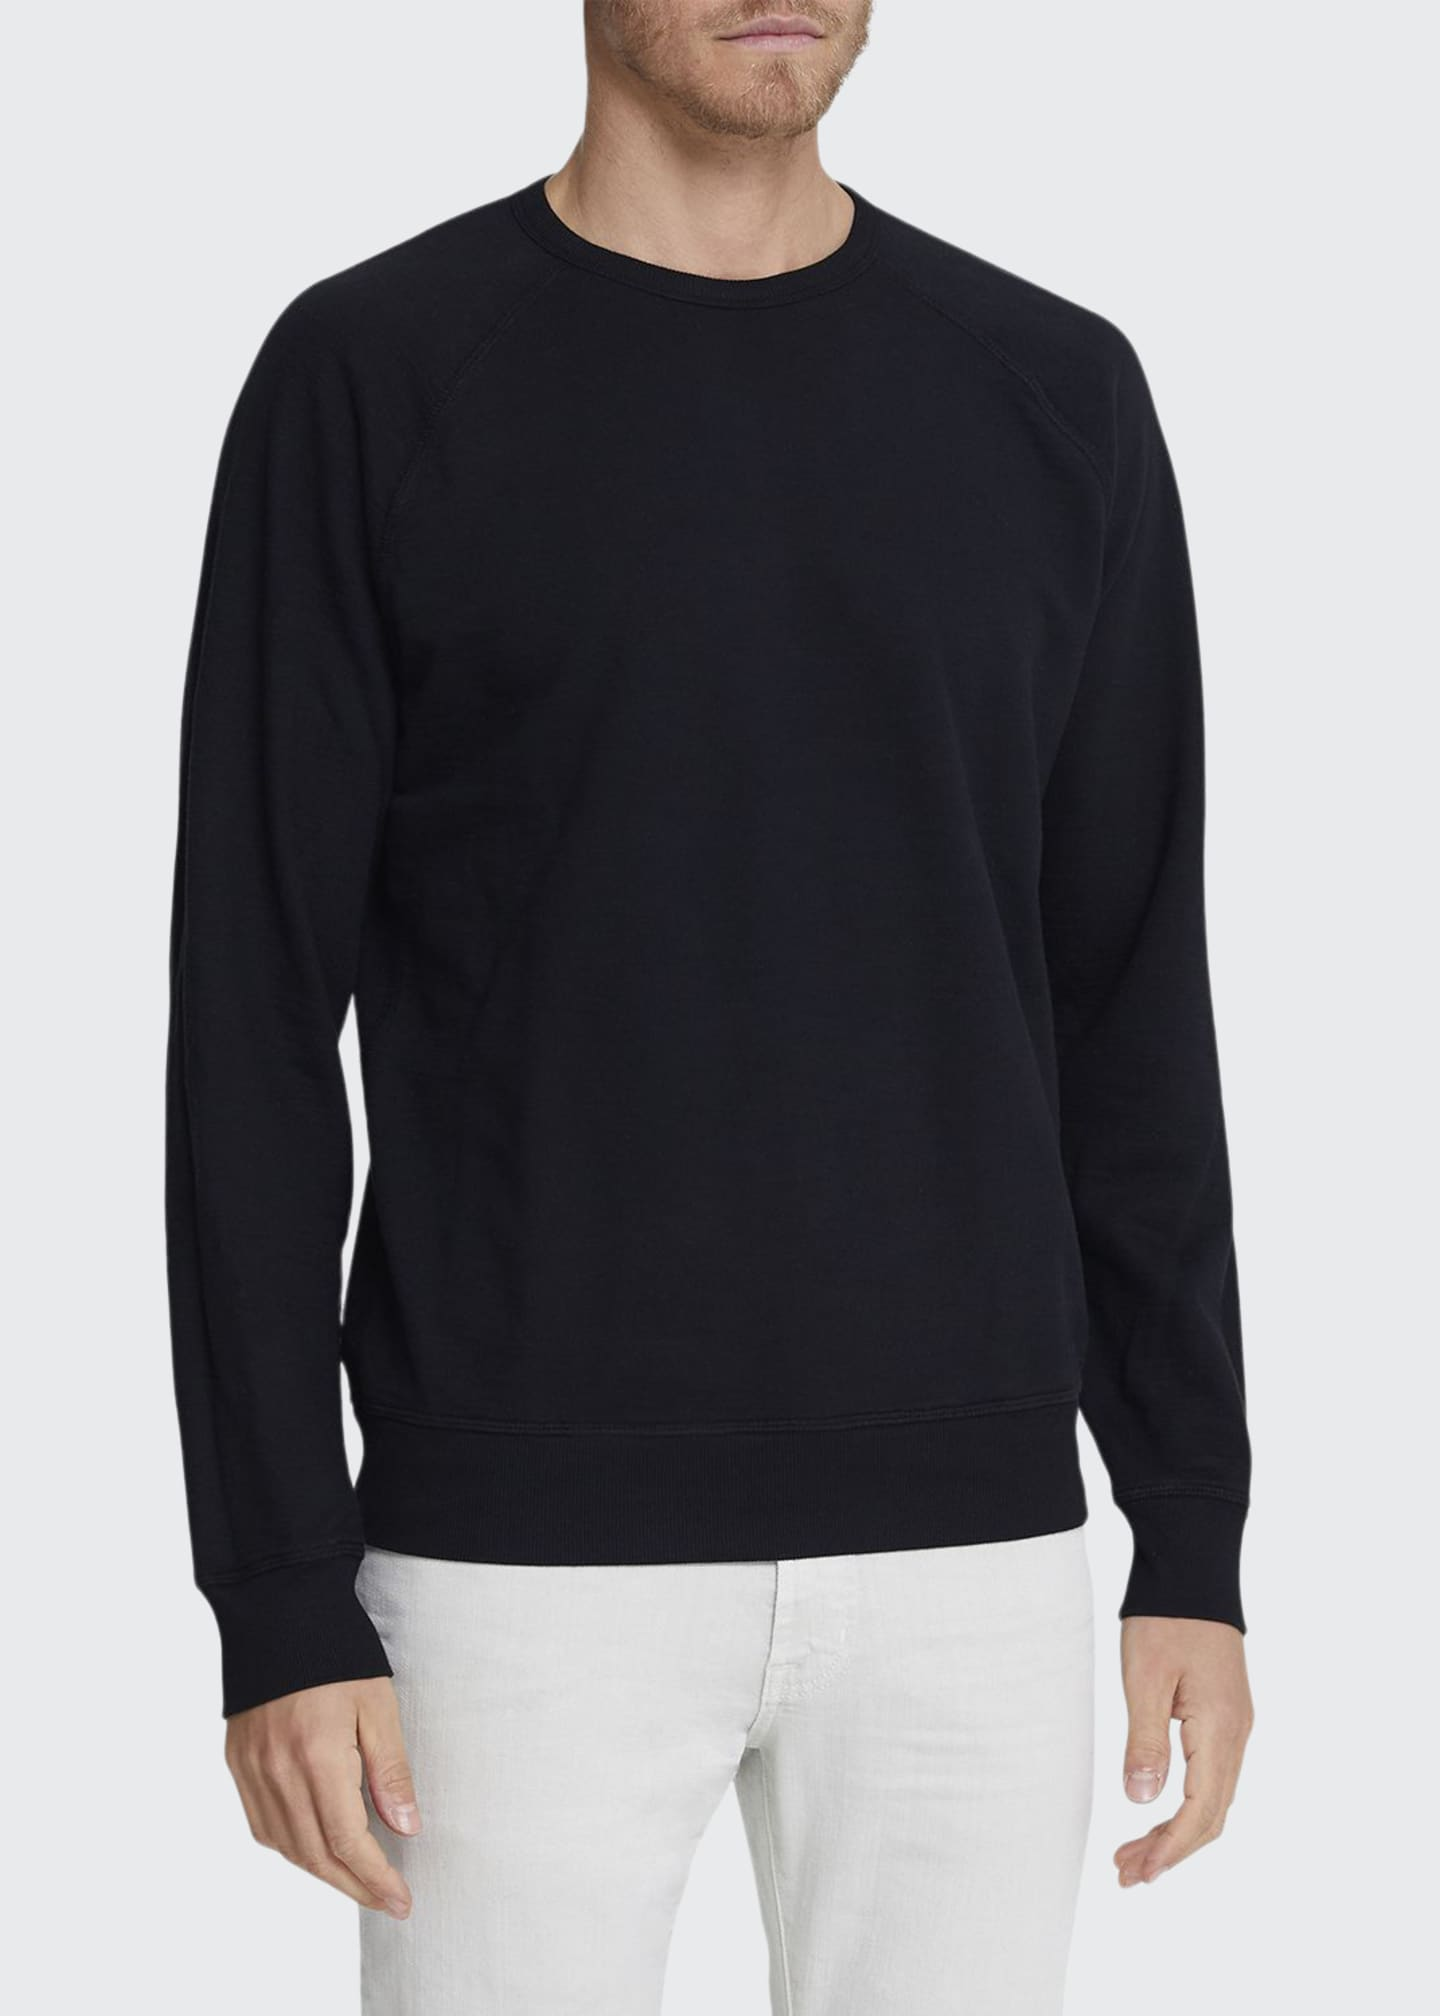 Image 1 of 2: Men's Siris Solid Cotton Crewneck Sweatshirt